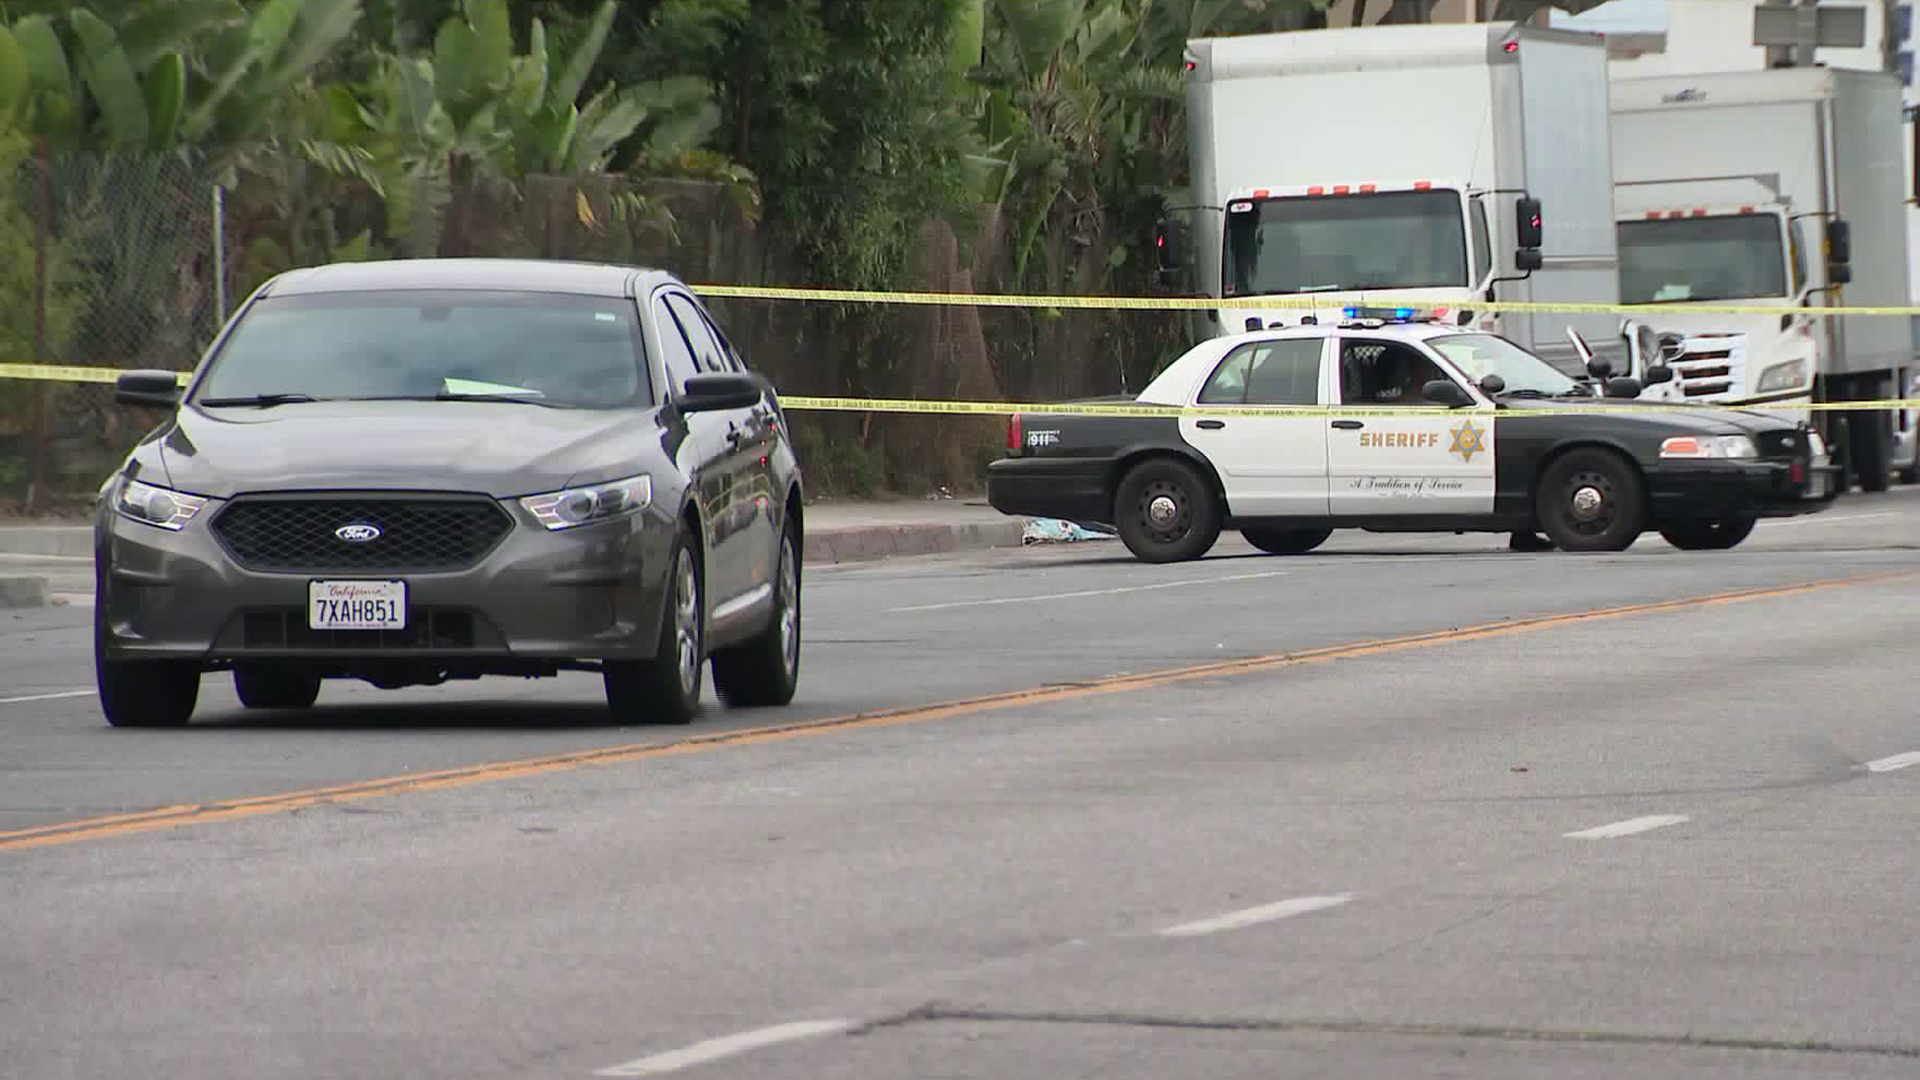 Deputies investigate a fatal shooting in the 9000 block of Compton Avenue in South Los Angeles on Aug. 17, 2019. (Credit: KTLA)